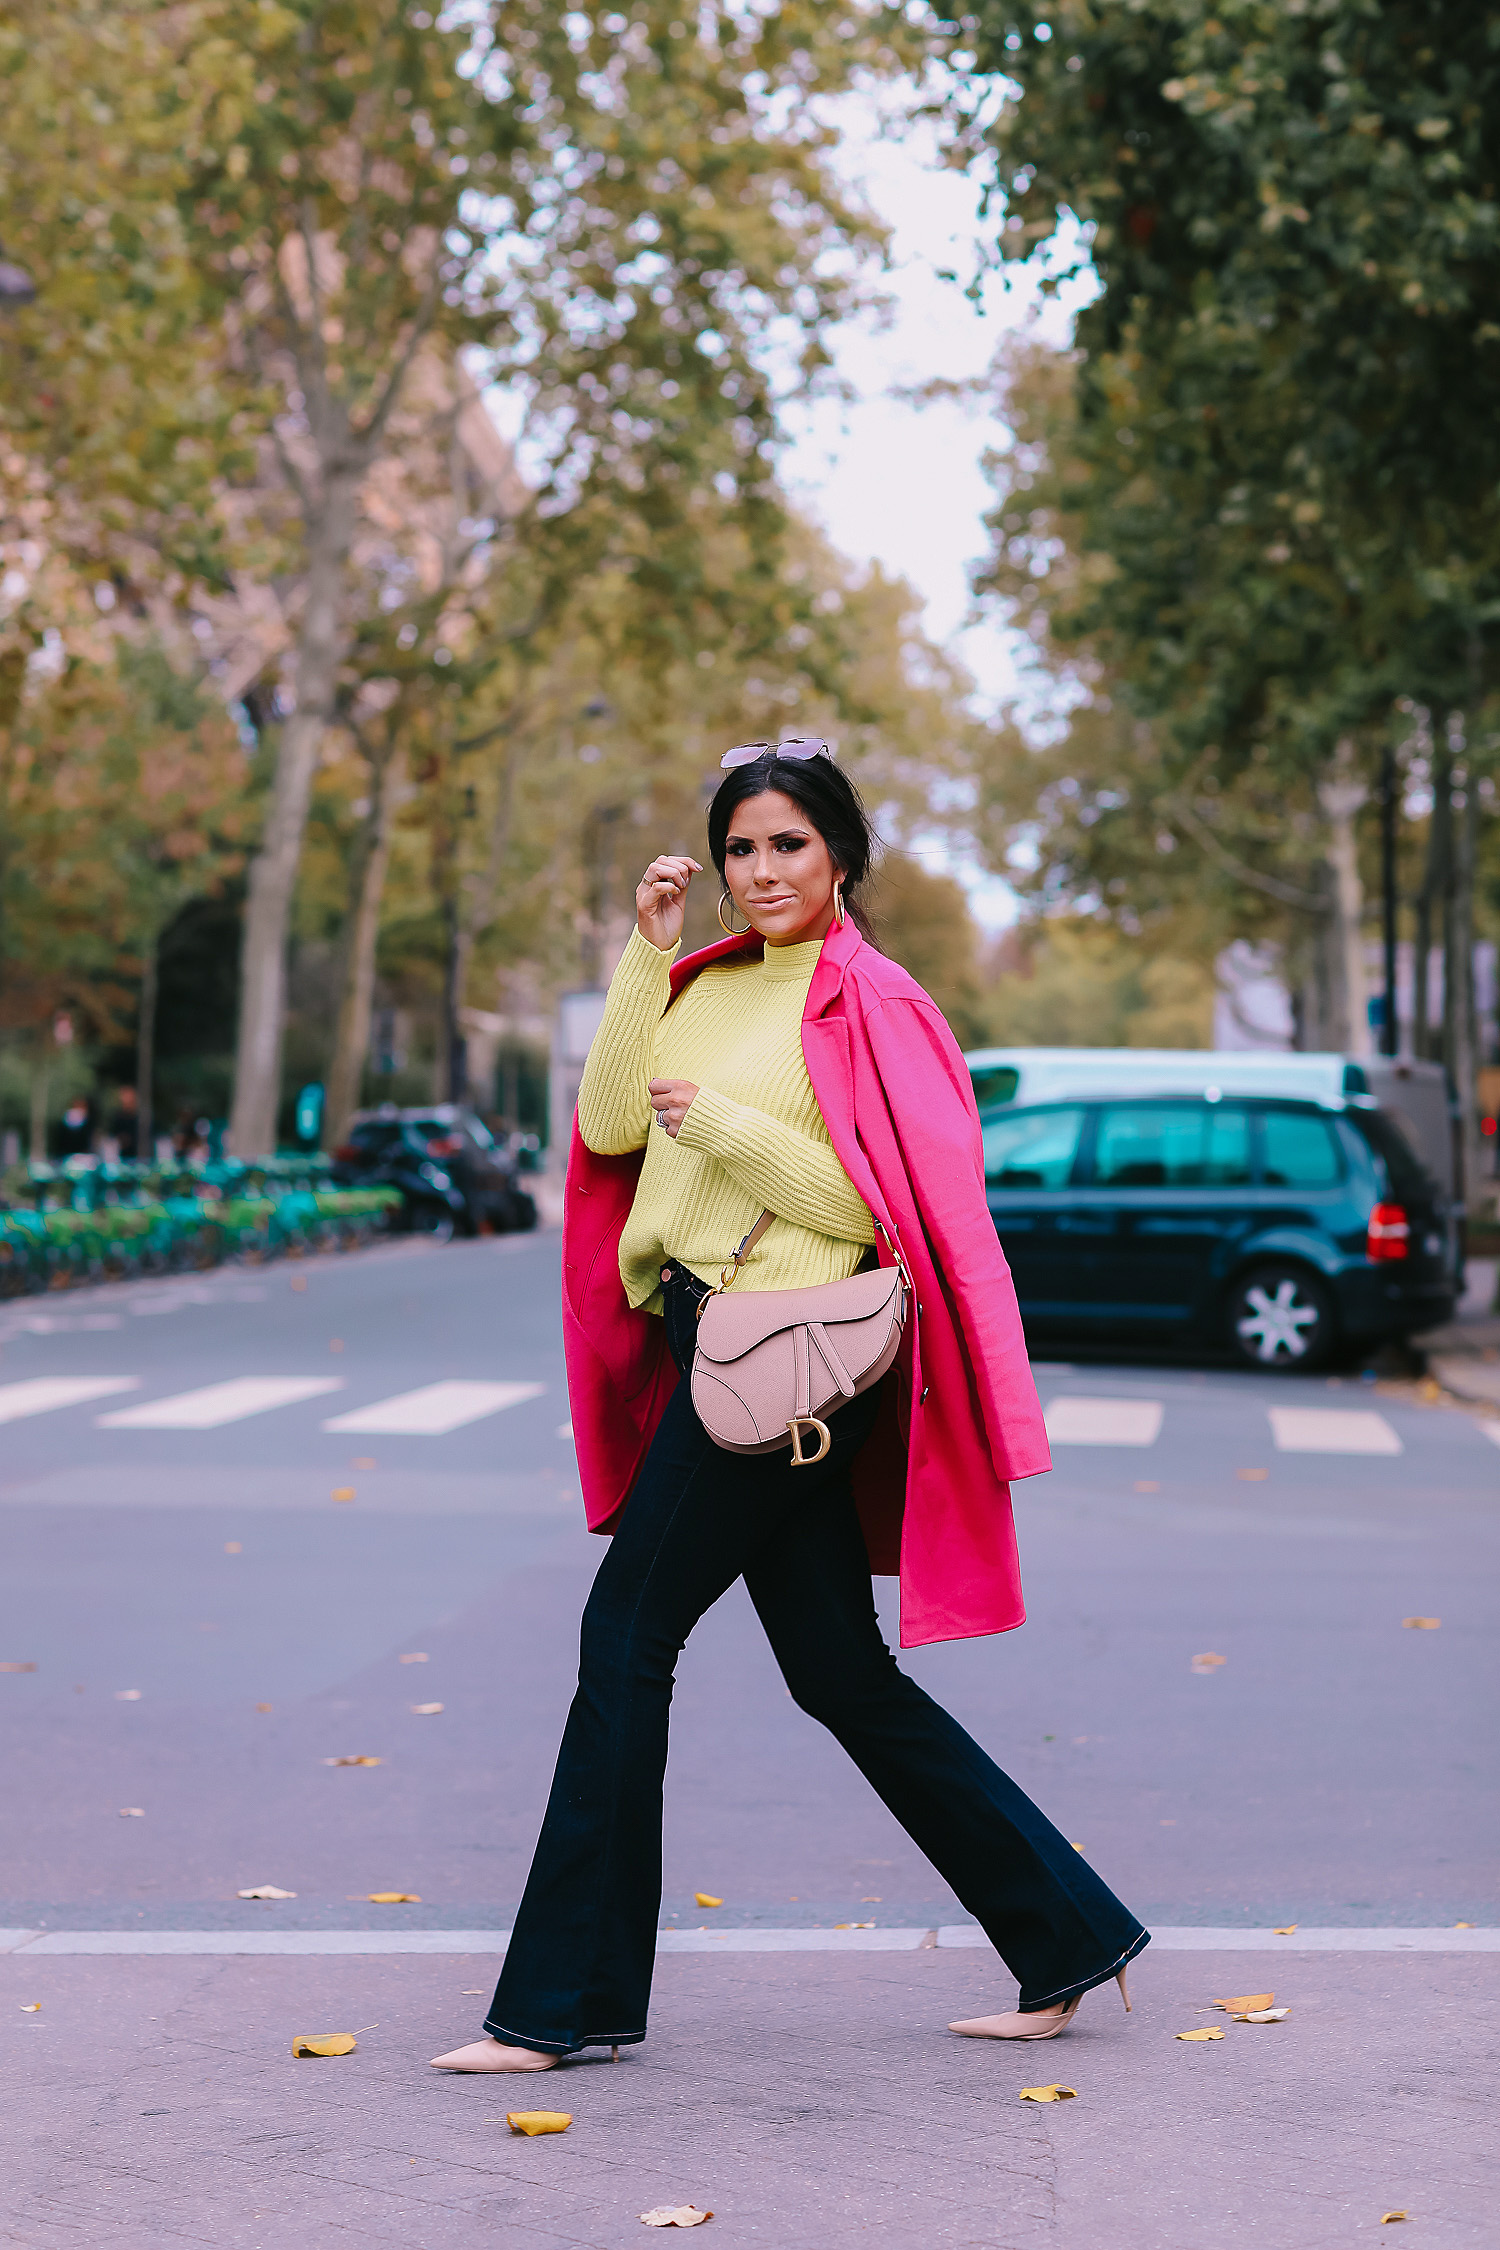 paris fall fashion 2019, fall fashion 2019, banana republic fall outfits 2019, paris outfit ideas fall and winter, what to wear in paris in october november, emily ann gemma-2 | paris fall fashion 2019, fall fashion 2019, banana republic fall outfits 2019, paris outfit ideas fall and winter, what to wear in paris in october november, emily ann gemma-2 | Do You Like Neon Or Neutrals?! Two Everyday Fall Outfits by popular Oklahoma fashion blog, The Sweetest Thing: image of a woman outside in Paris and wearing a Banana Republic High-Rise Flare Jean, Banana Republic Double-Faced Topcoat, and Banana Republic Chunky High Crew-Neck Sweater.